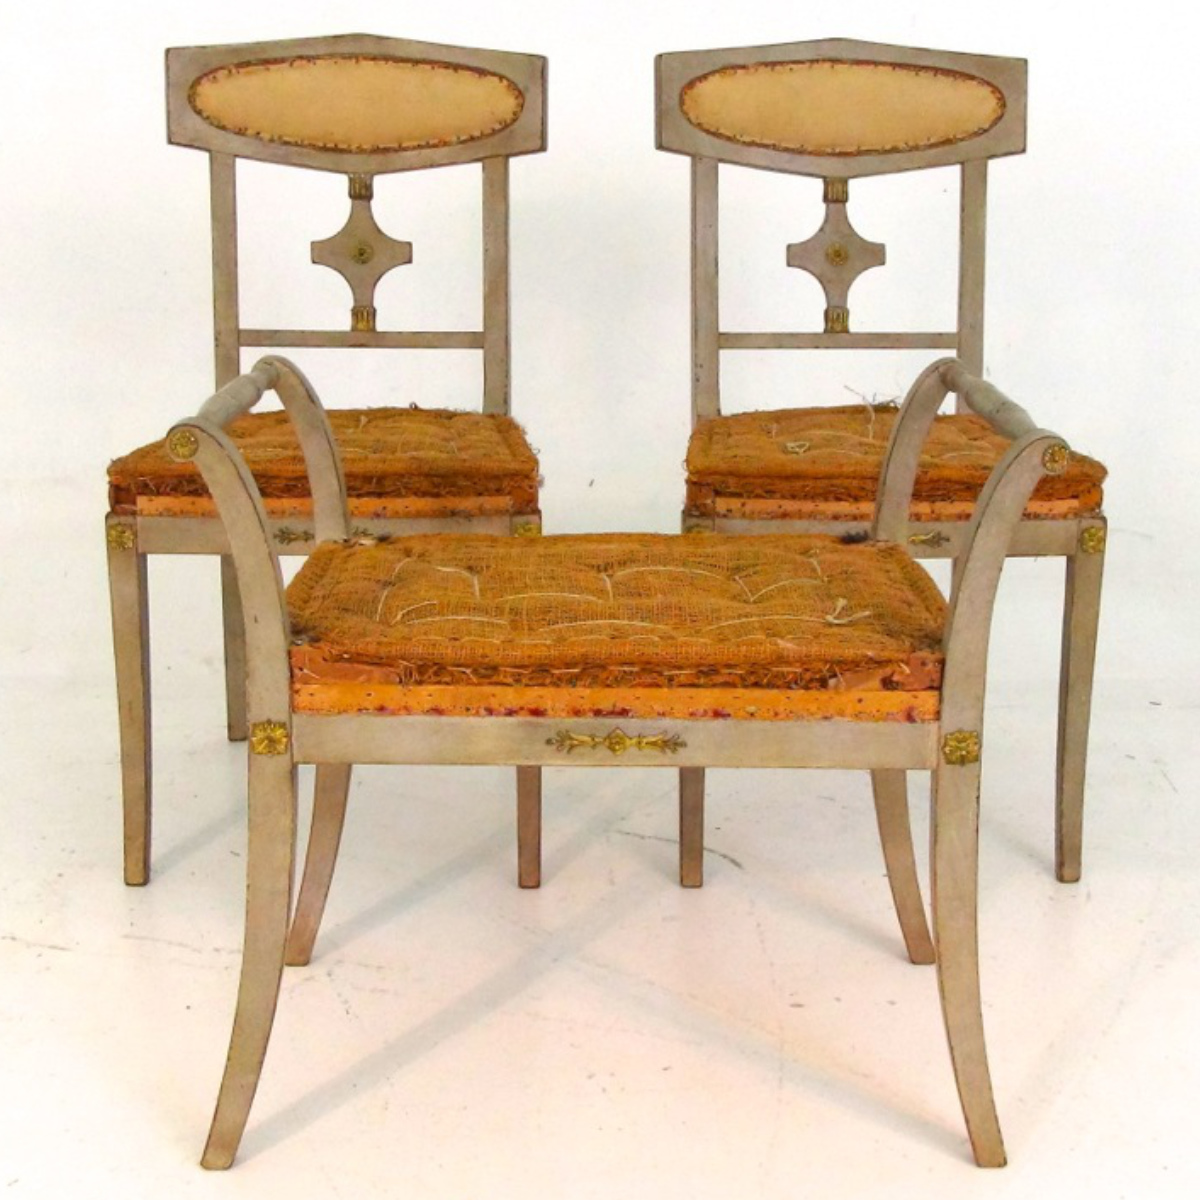 Pair of chairs, one stool, 1900. - € 1.000